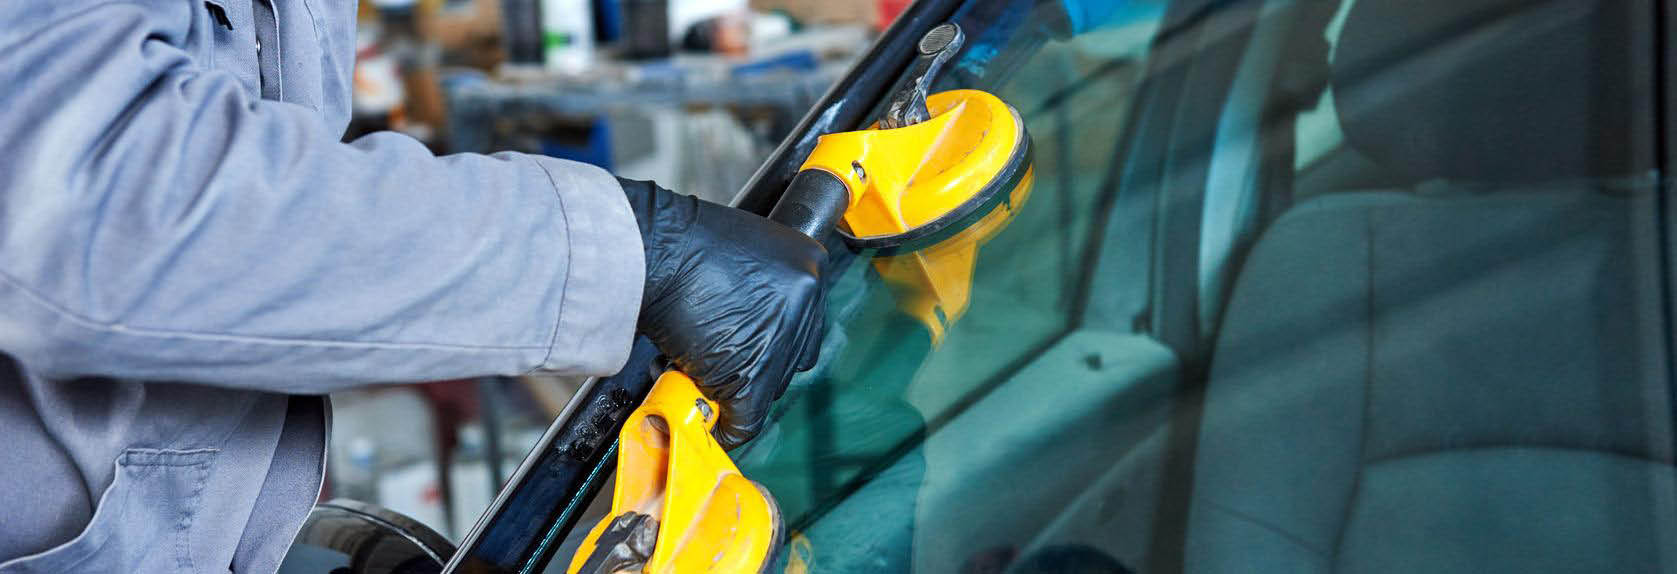 FREE MOBILE SERVICE windshield replacement through insurance